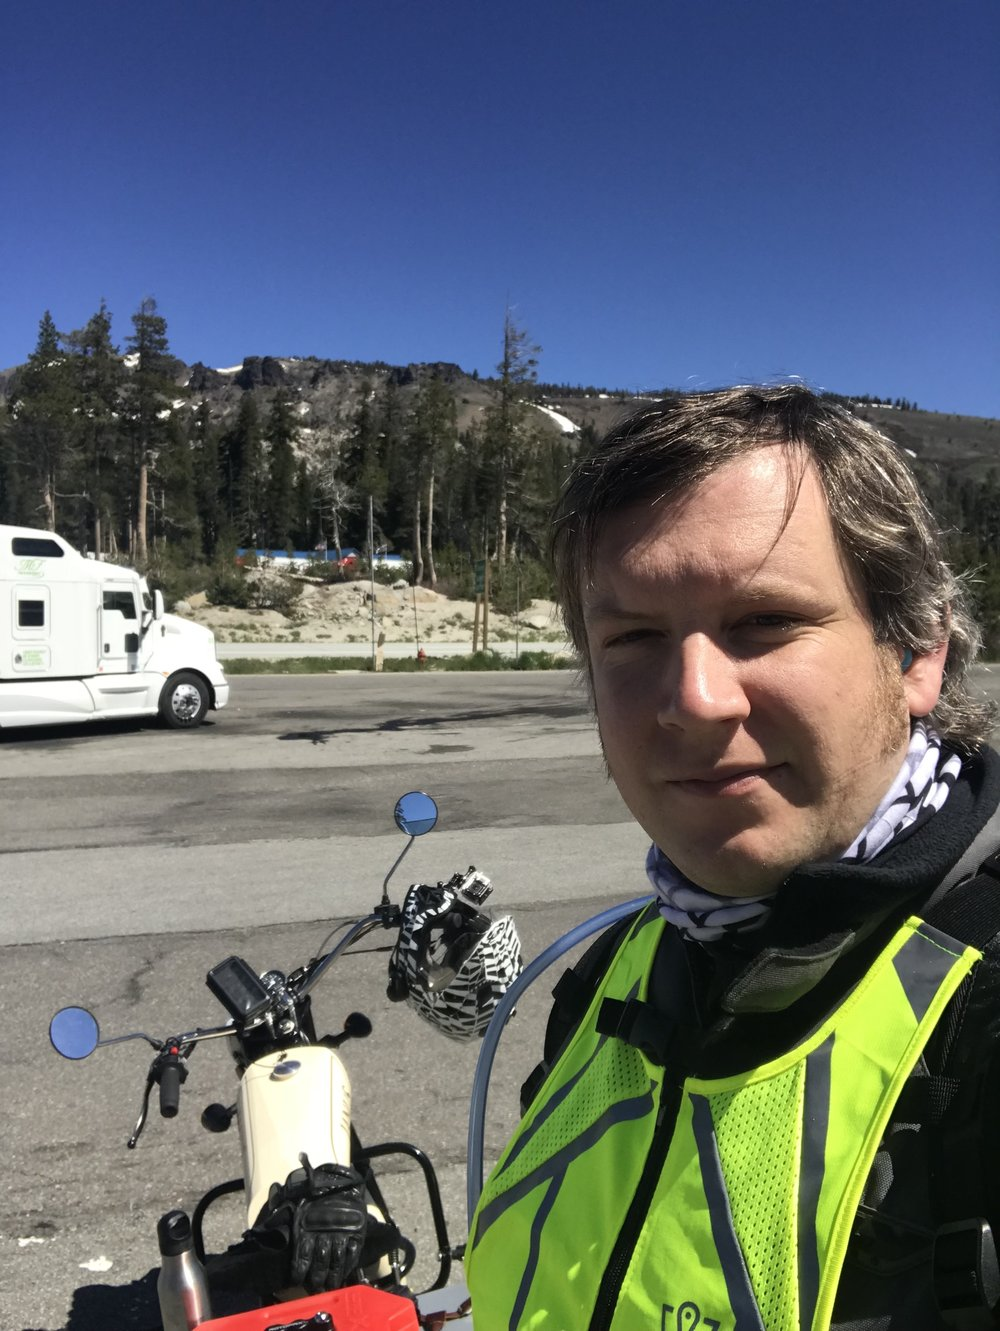 At Donner Pass, the summit of my crossing of the Sierra Nevadas